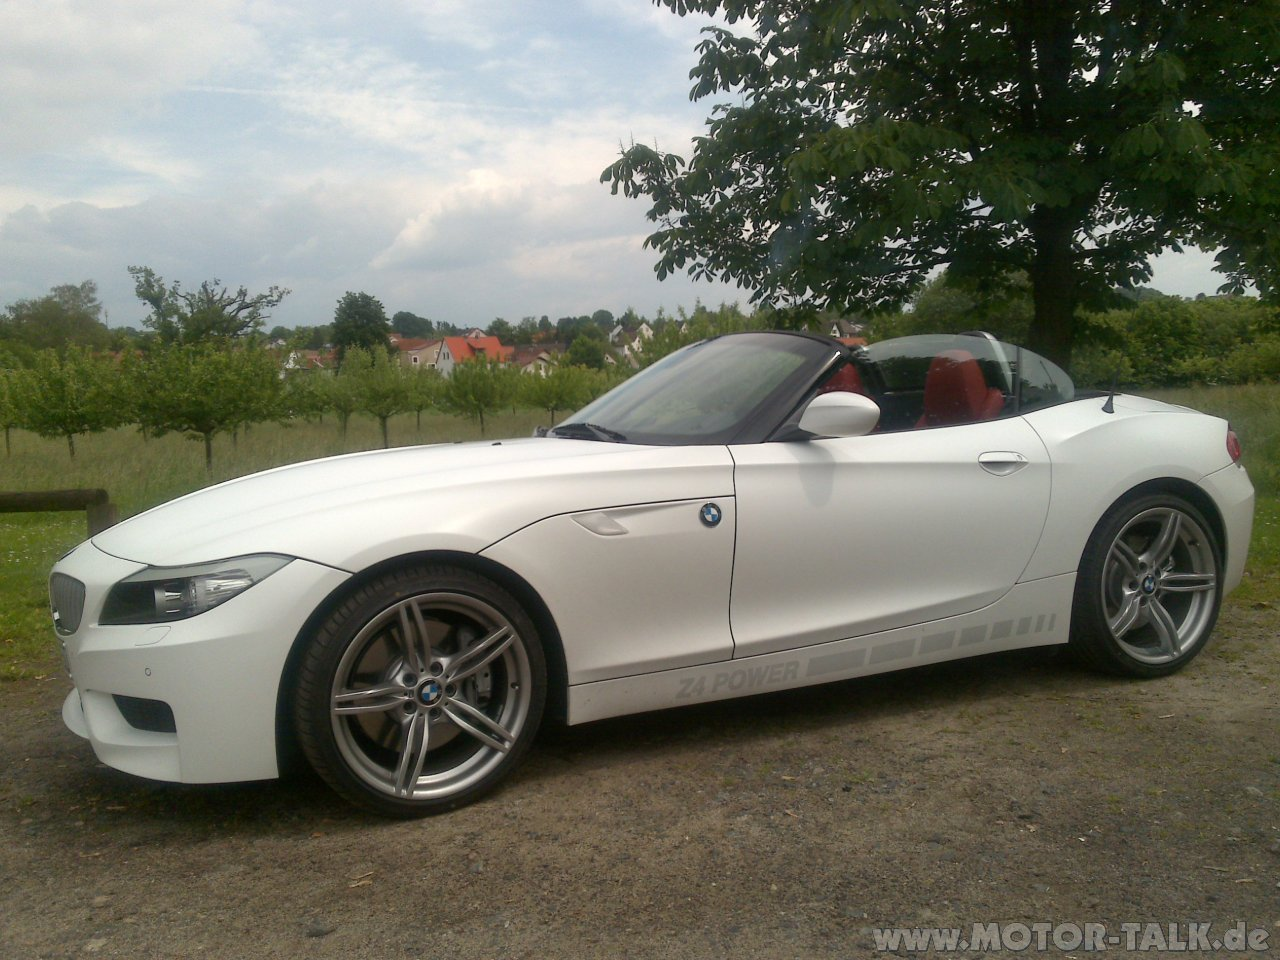 Handy01063010 167 Leasingraten Z4 35i Oder 35is Bmw Z4